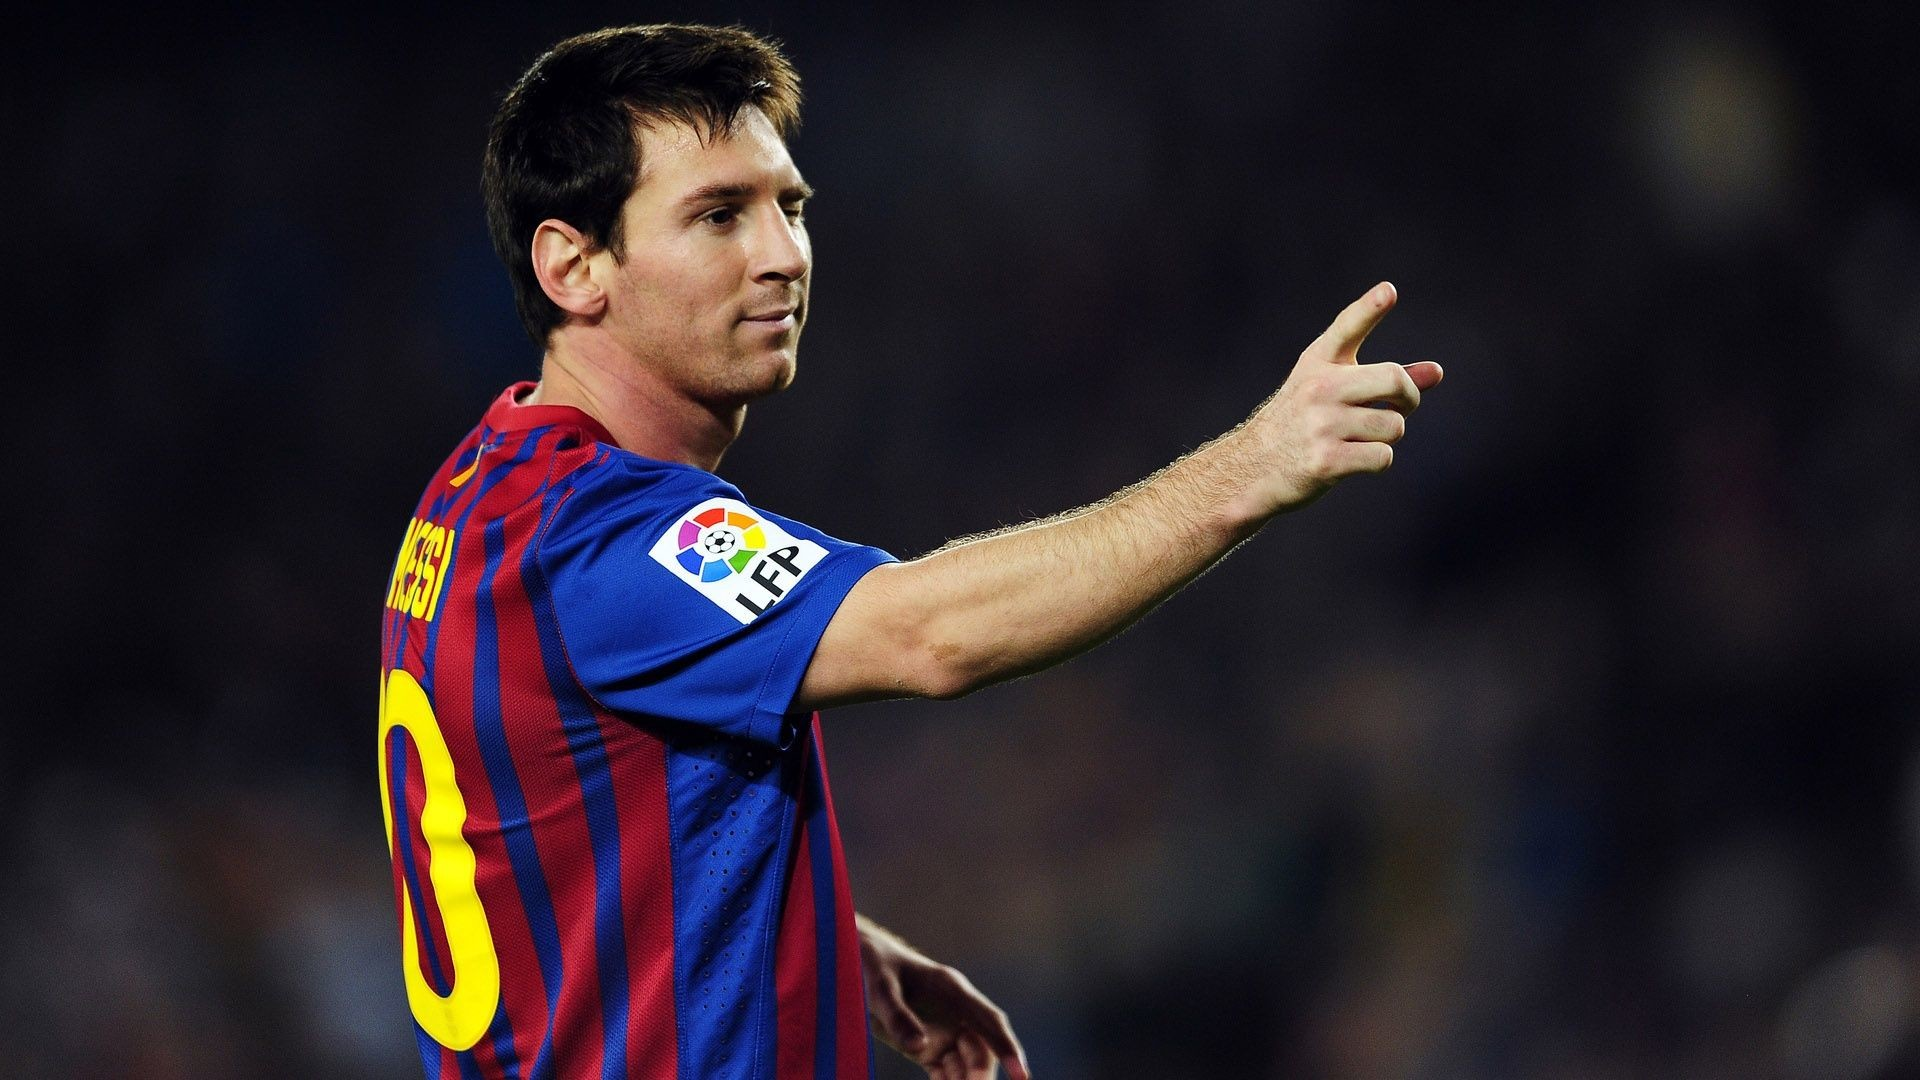 Lionel Messi Wallpaper Hd 78 Images